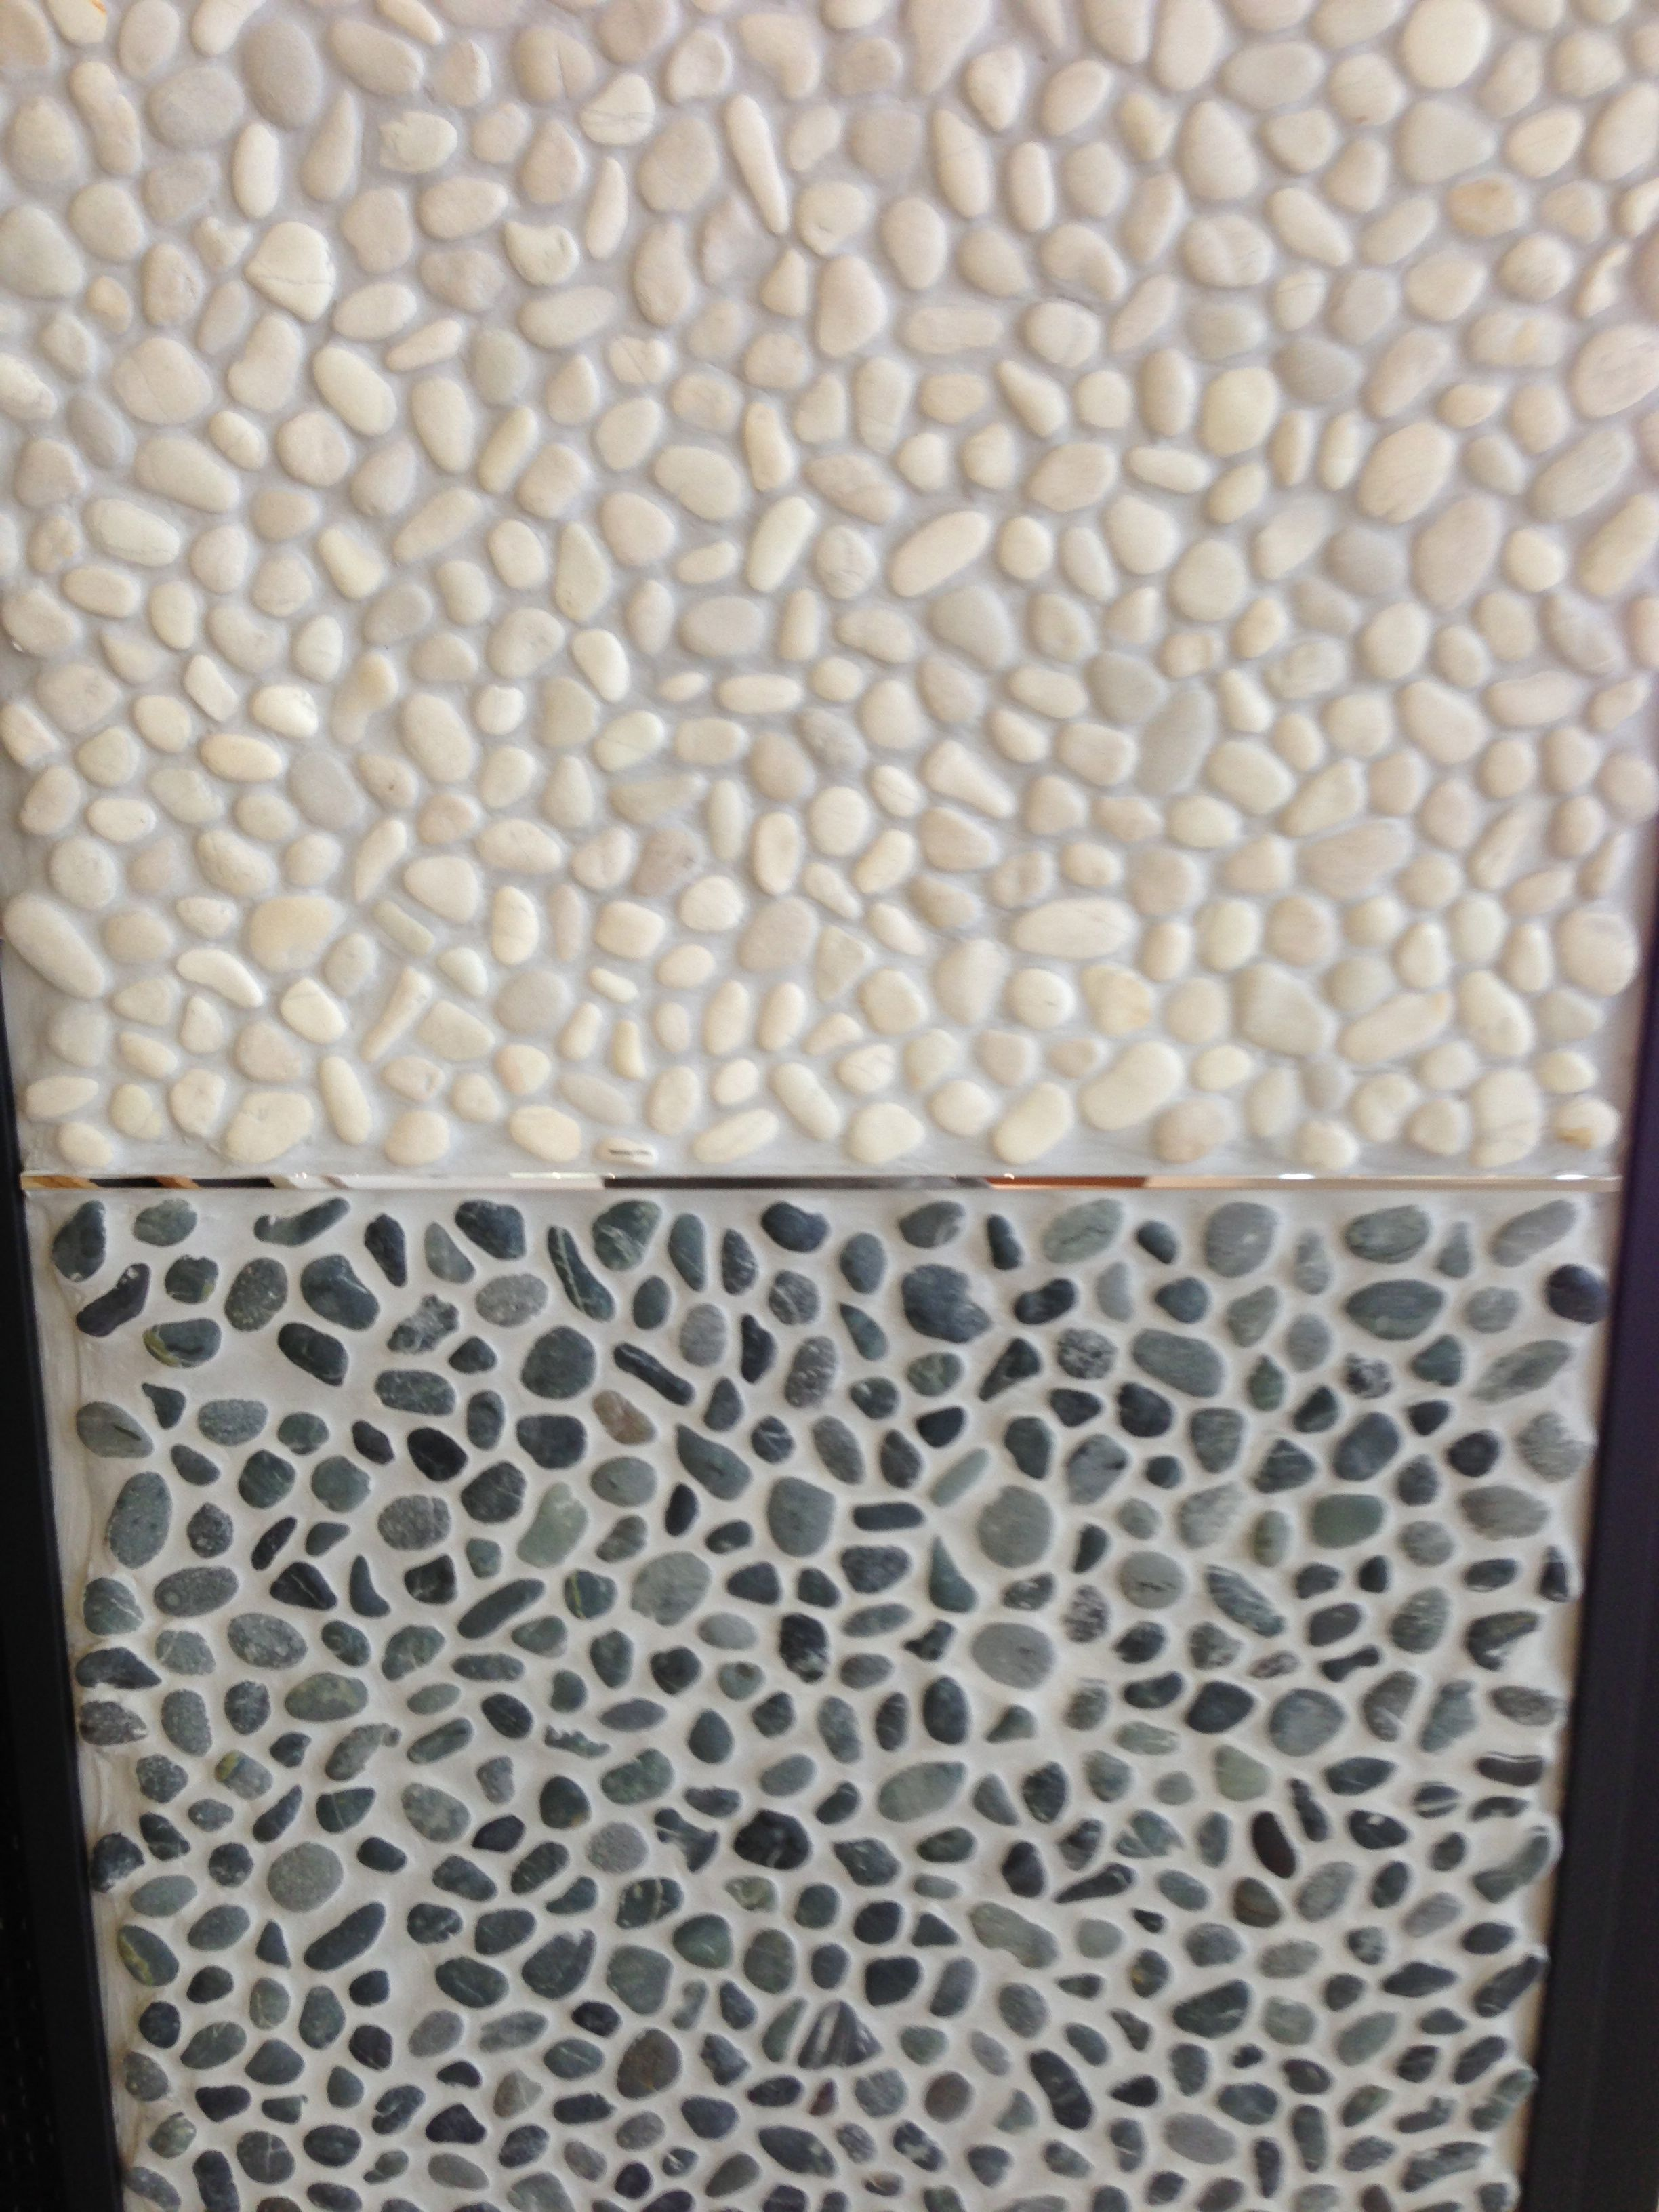 White pebble with grey grout for oscars shower tray decorating white pebble with grey grout for oscars shower tray dailygadgetfo Images